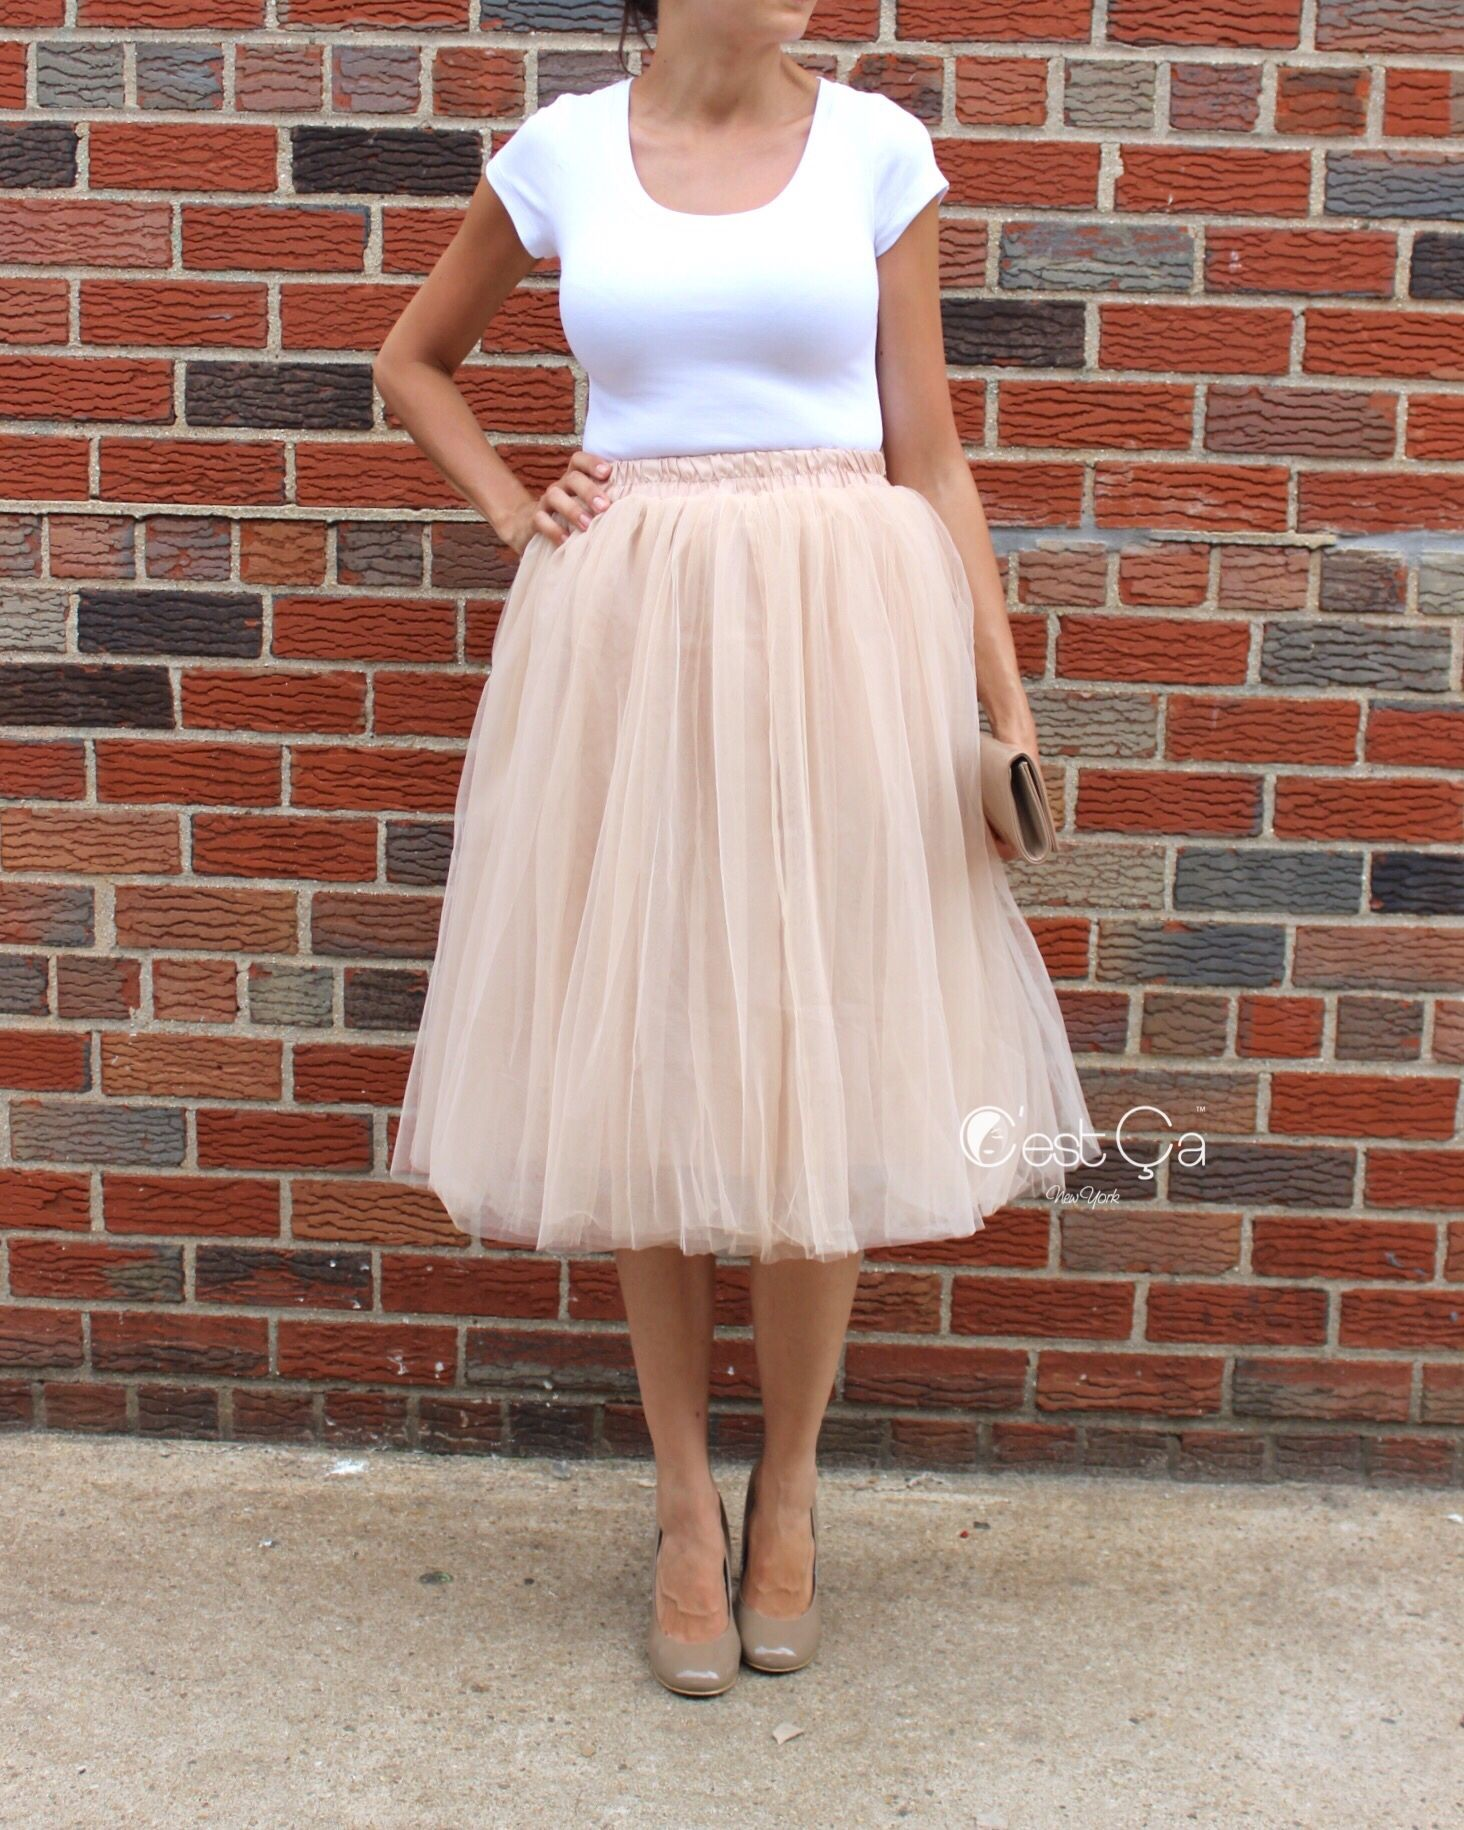 f540487b1f Semi-puffy pale beige tulle skirt. 6 layers of fine semi-hard tulle. Lined.  Petite midi length. Designed in New York. Handmade. Available in other  colors.